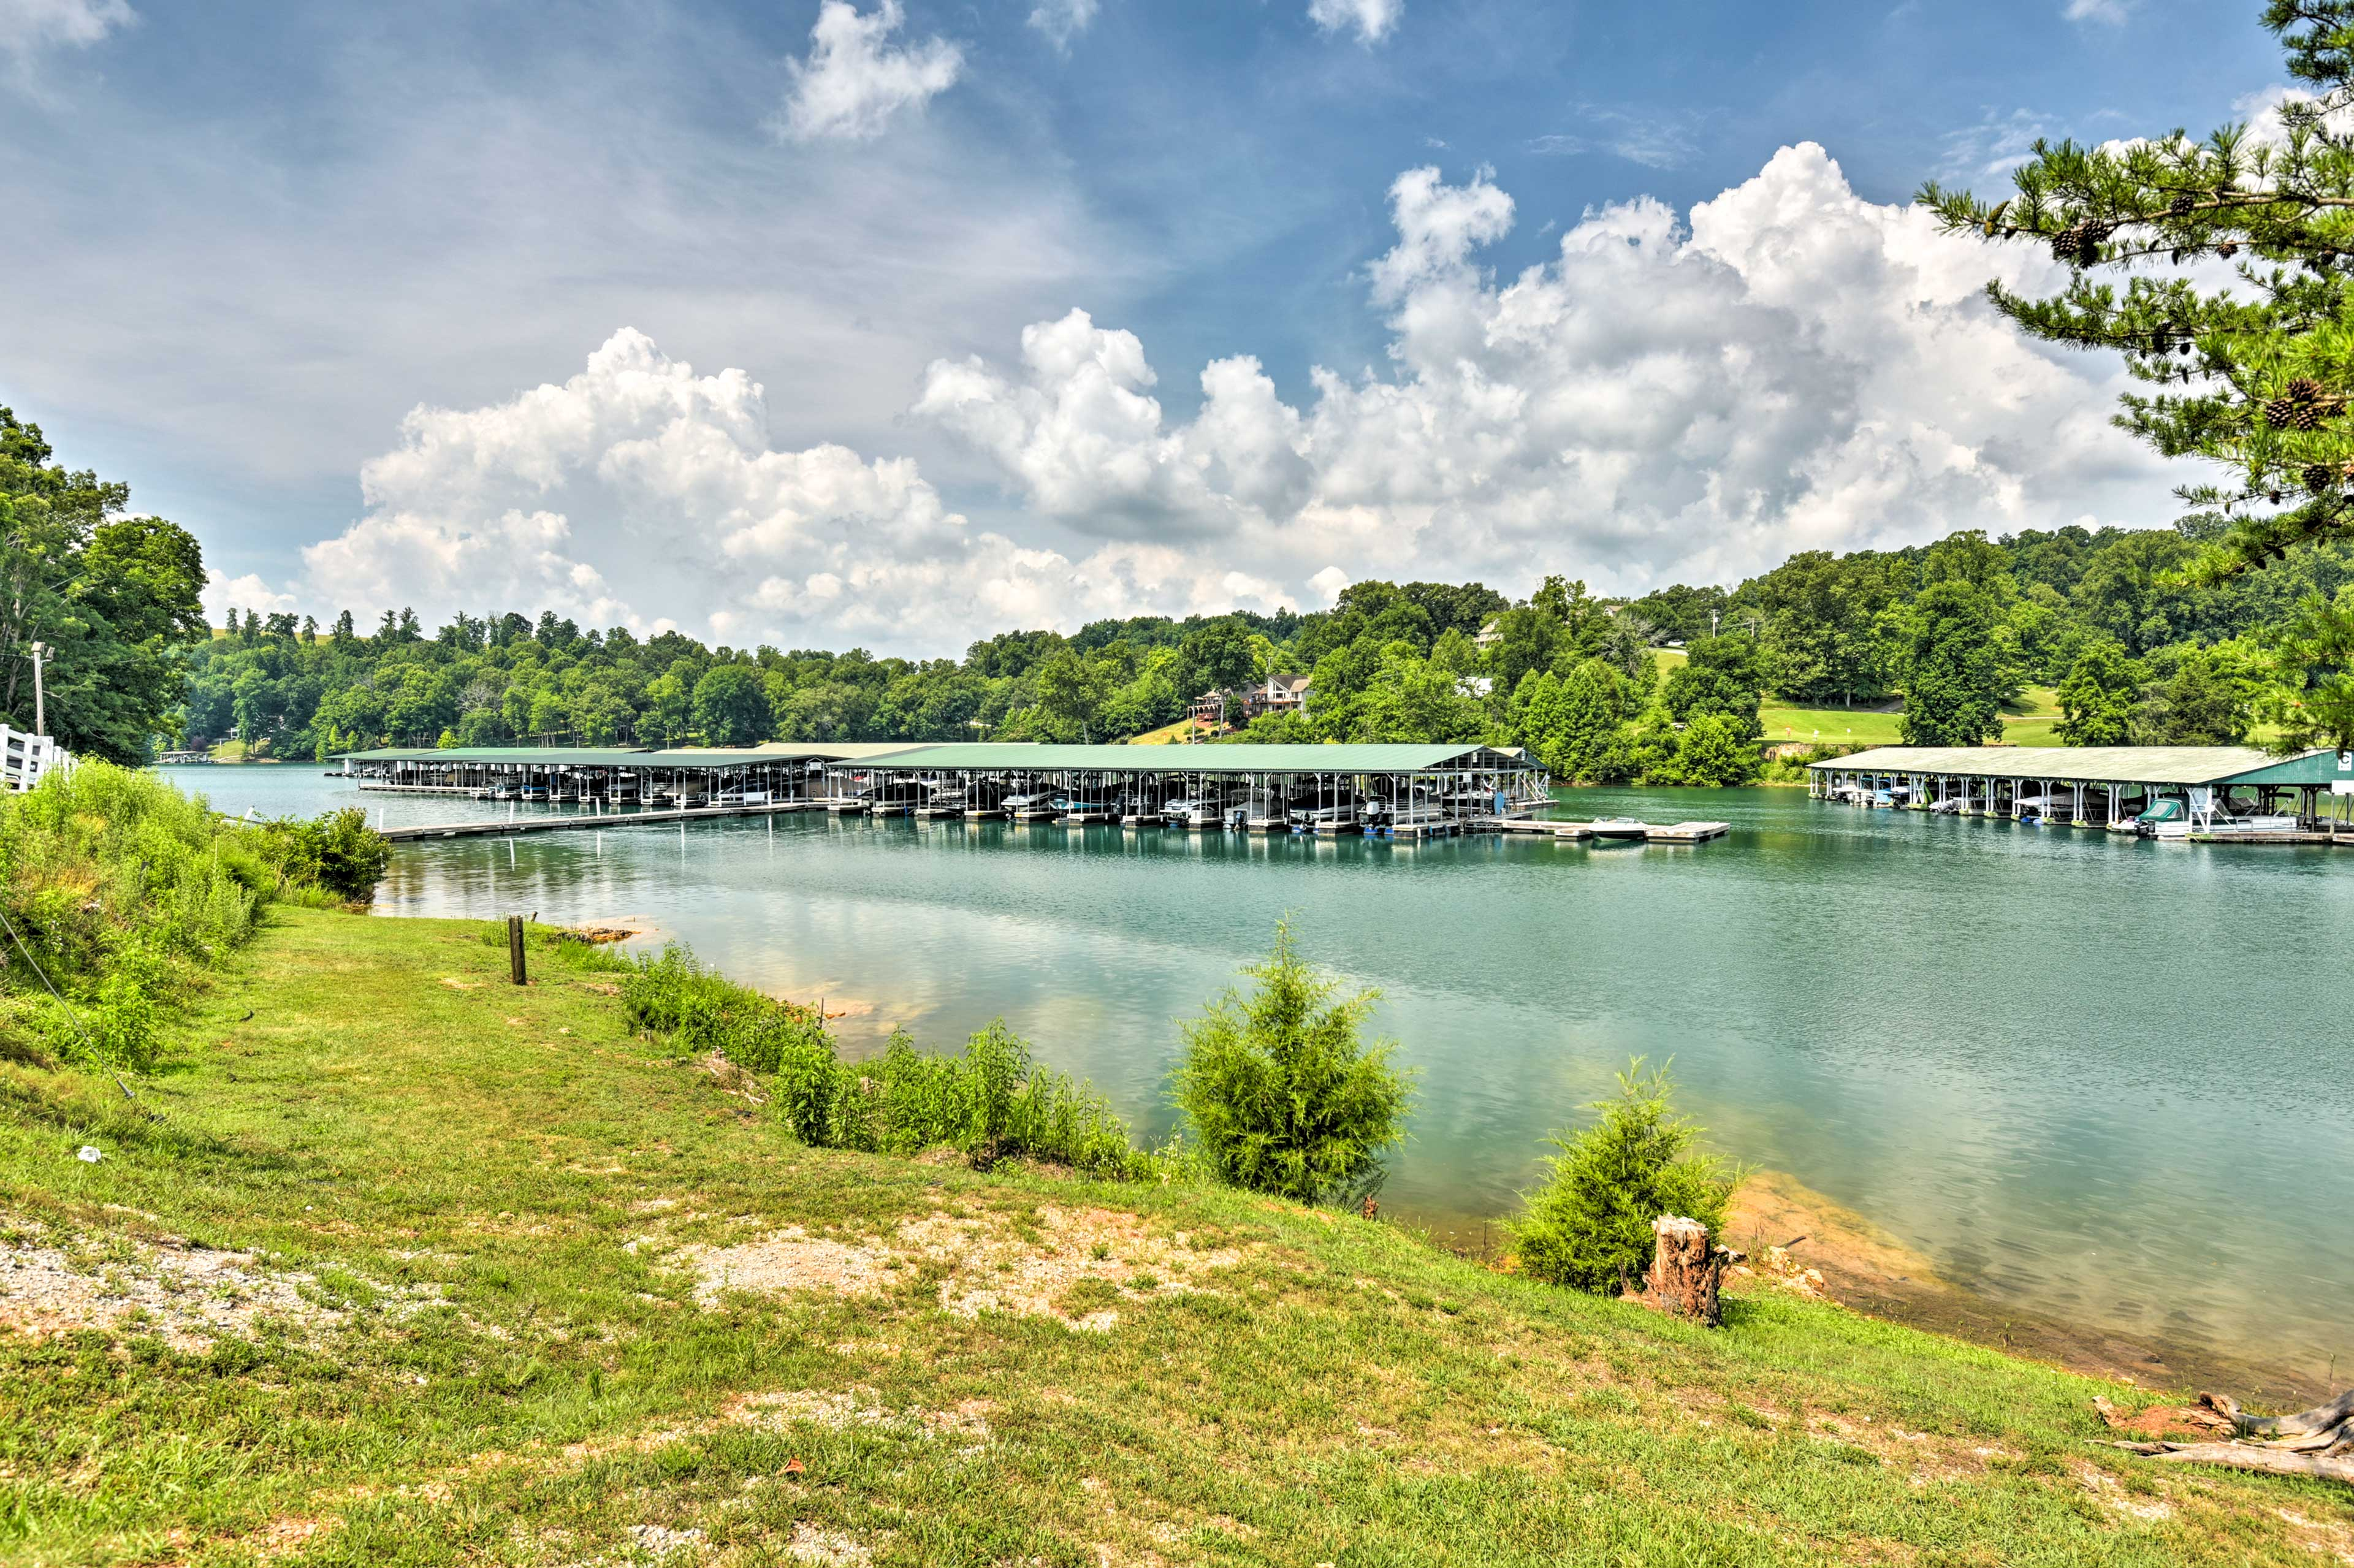 Lake Norris offers fishing, swimming, and more!